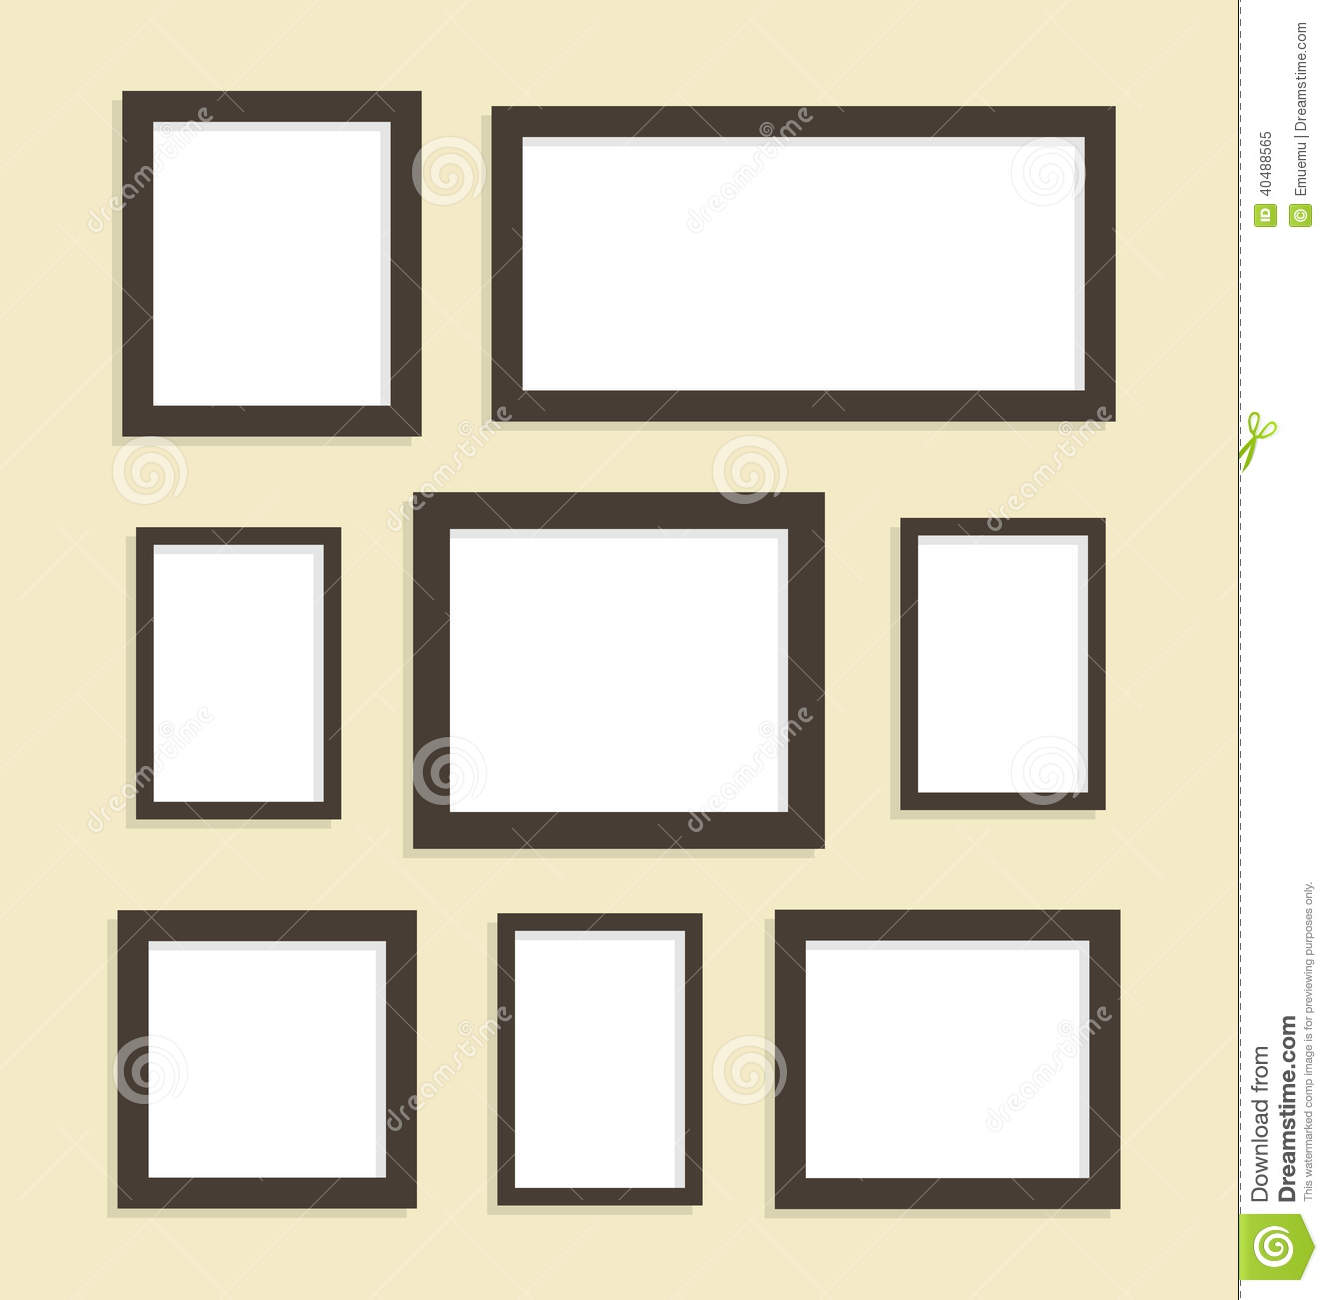 Eight picture frames stock vector. Illustration of picture - 40488565